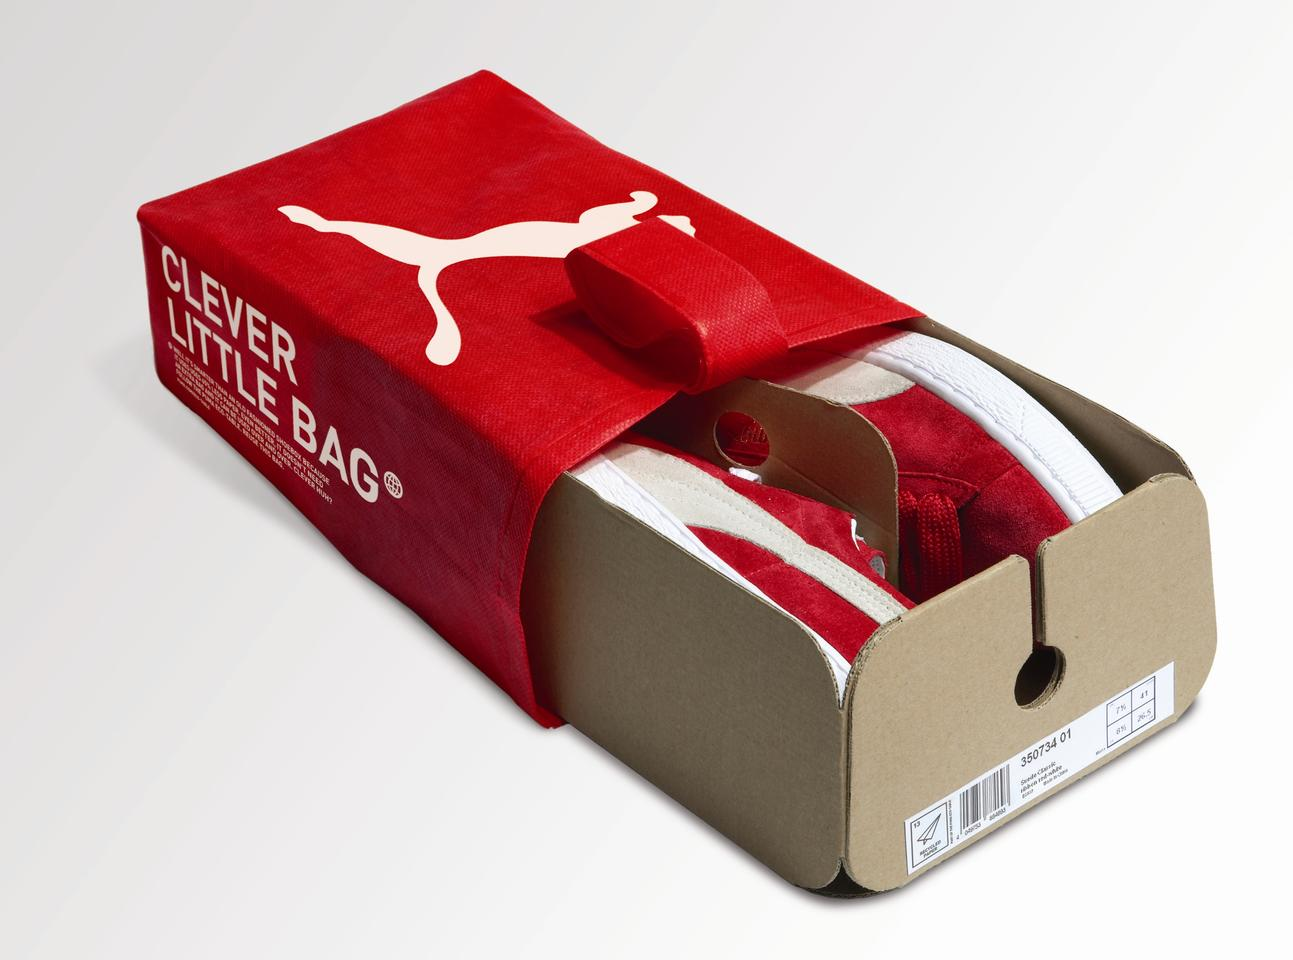 PUMA is getting rid of shoeboxes and replacing them with its Clever Little Bag, a single folded sheet of cardboard in a resuable, recyclable PET bag